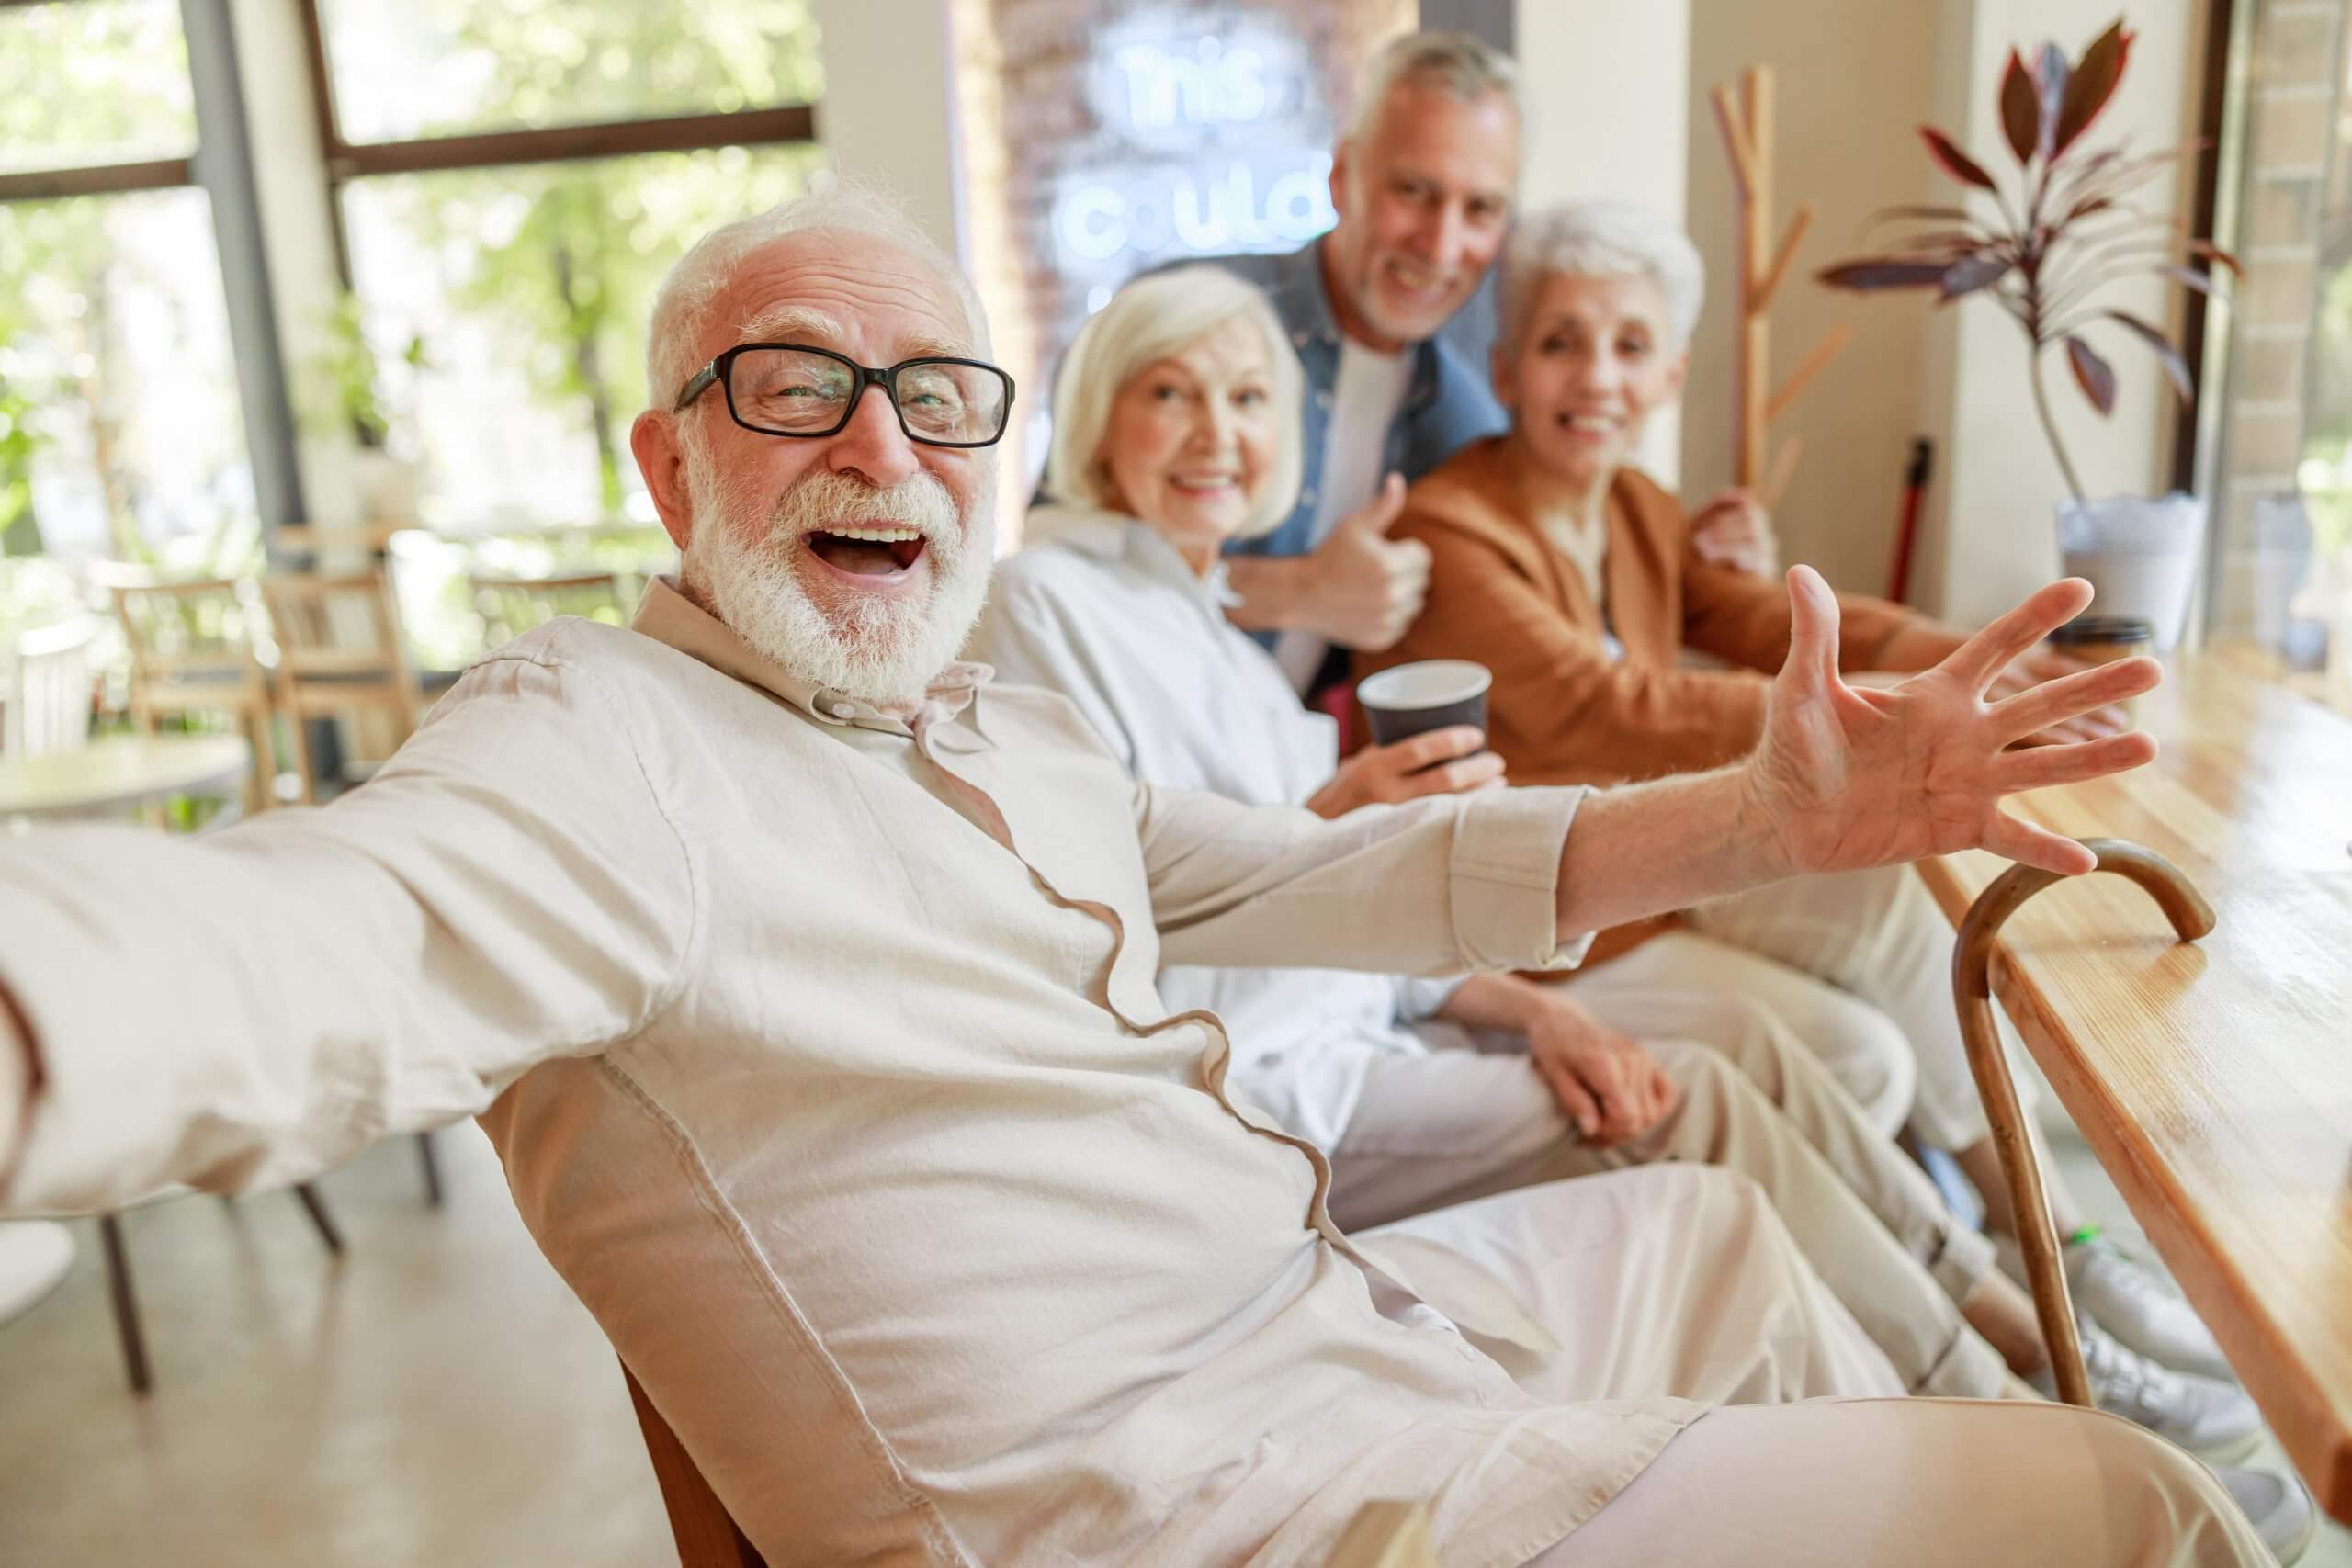 The importance of Home Care and how it compares to other Aged Care options